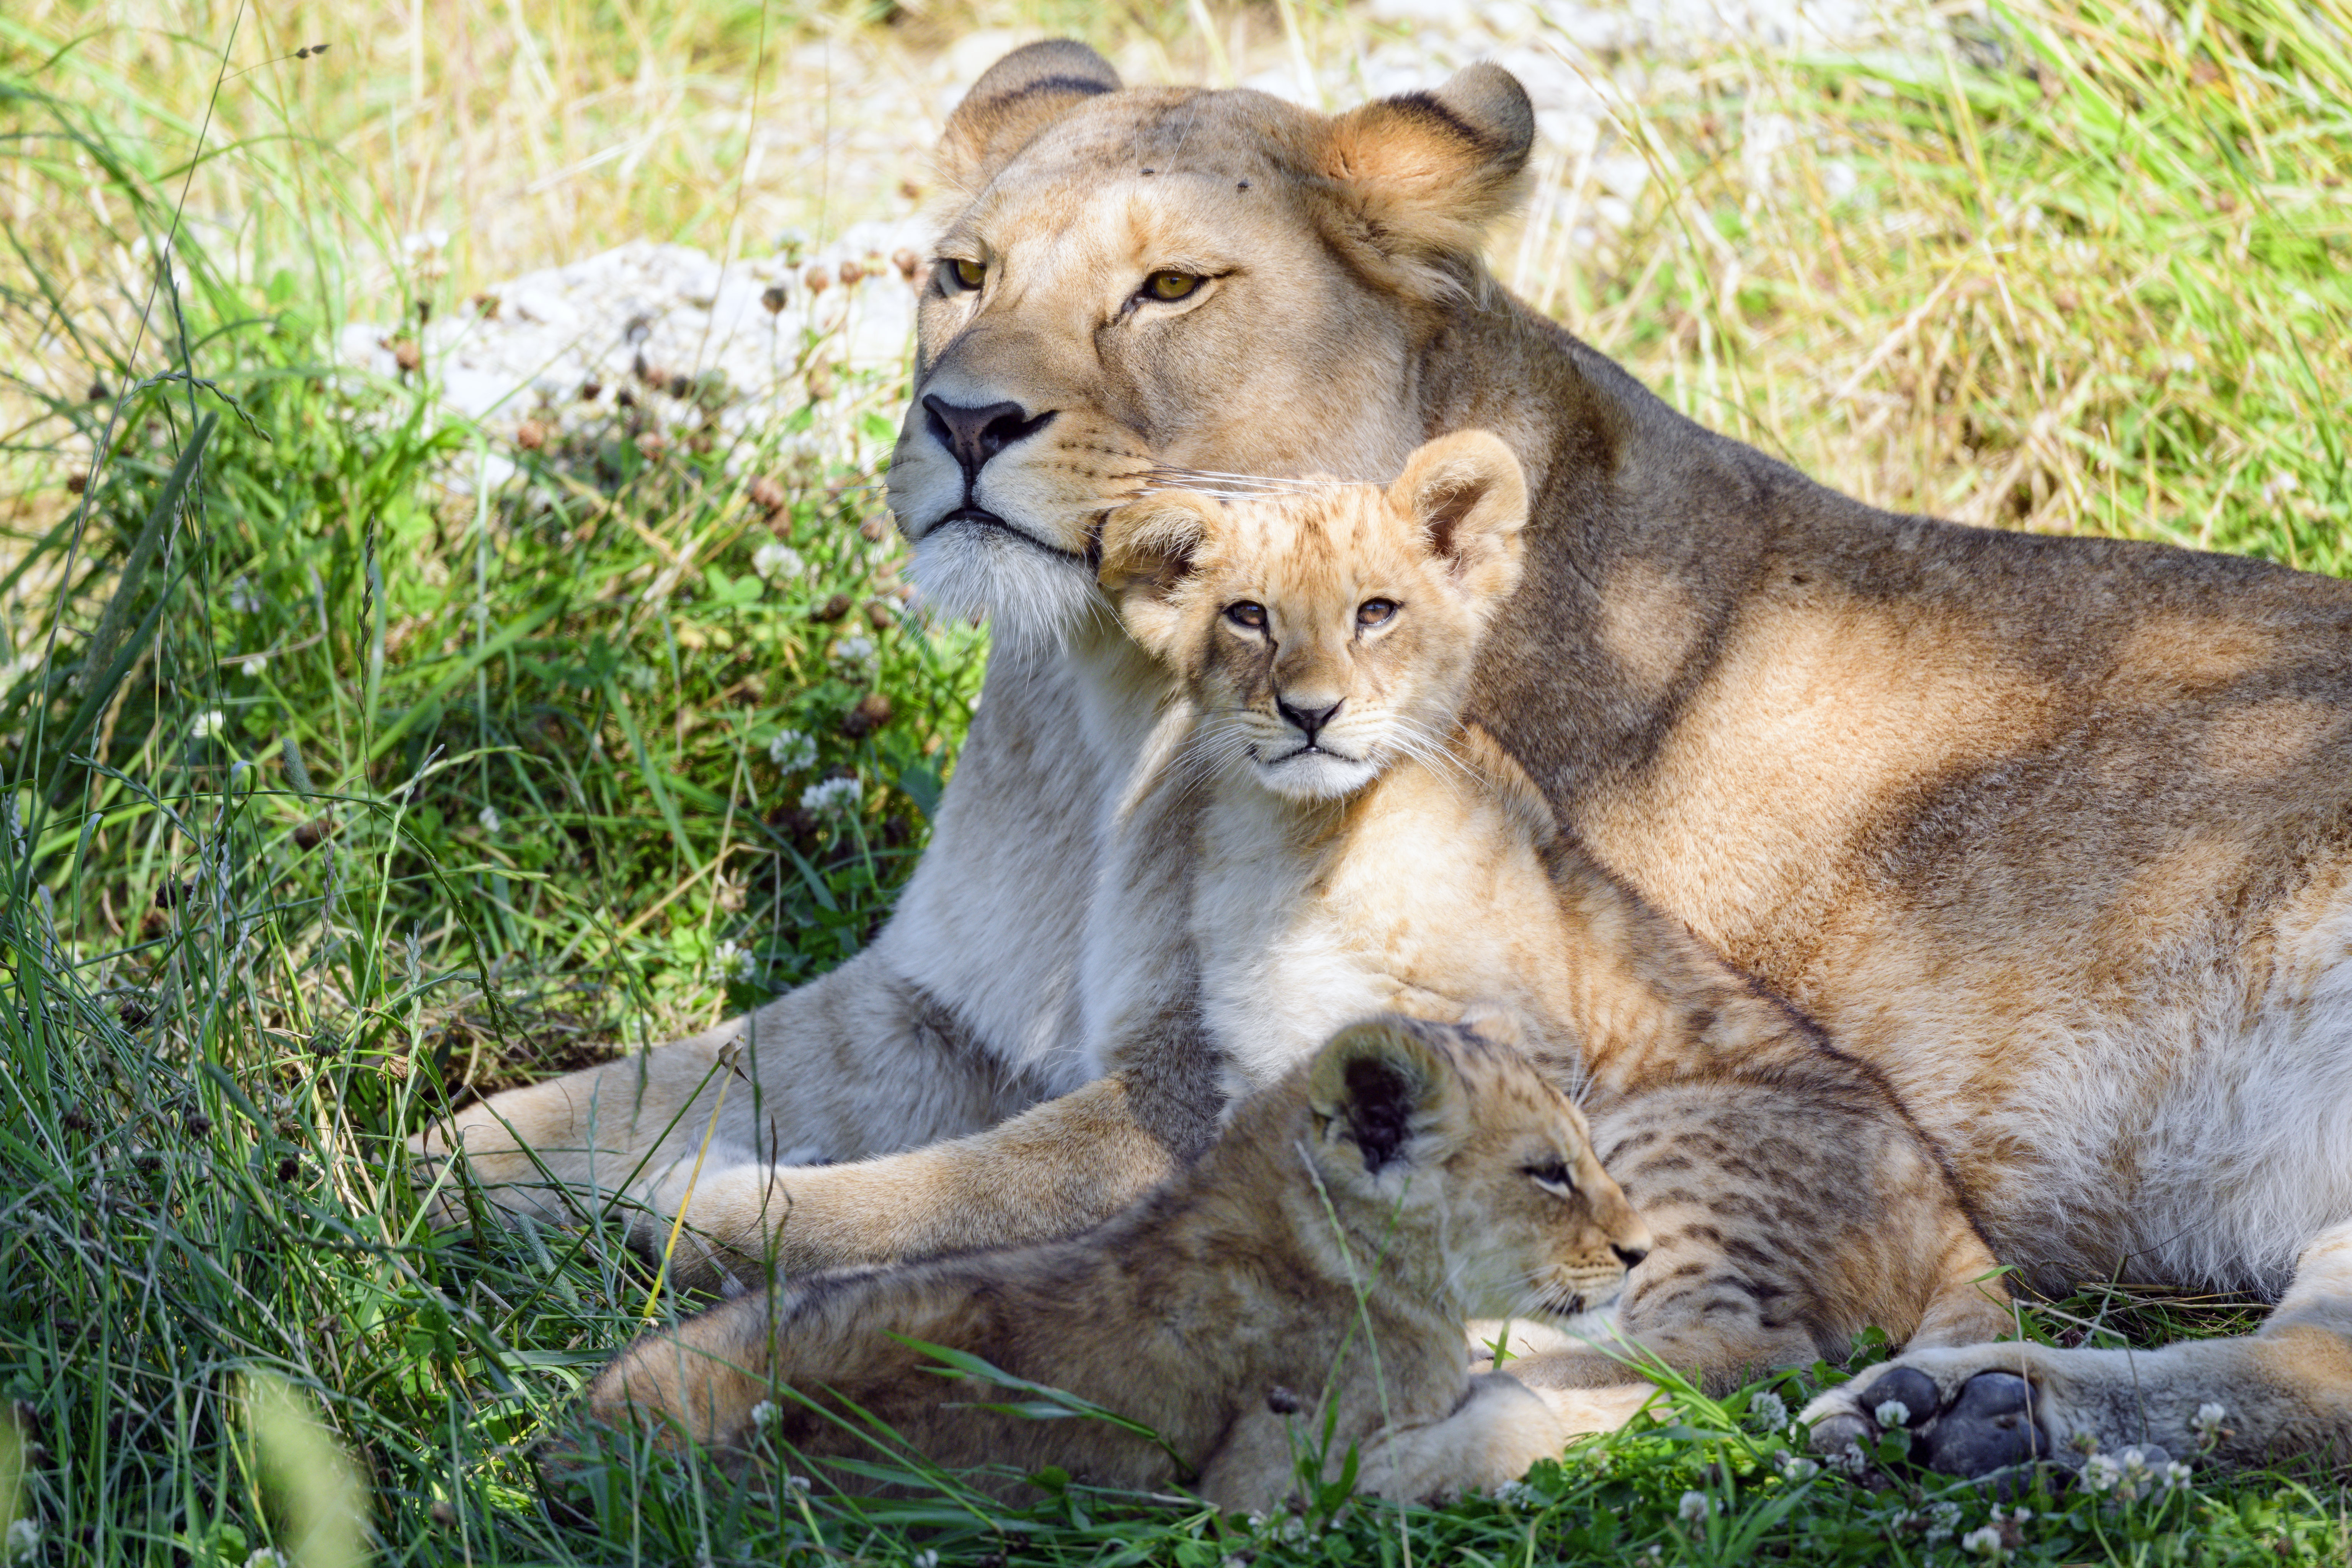 101178 download wallpaper Animals, Lioness, Young, Joey, Family, Nicely, Nice, Care, Grass screensavers and pictures for free